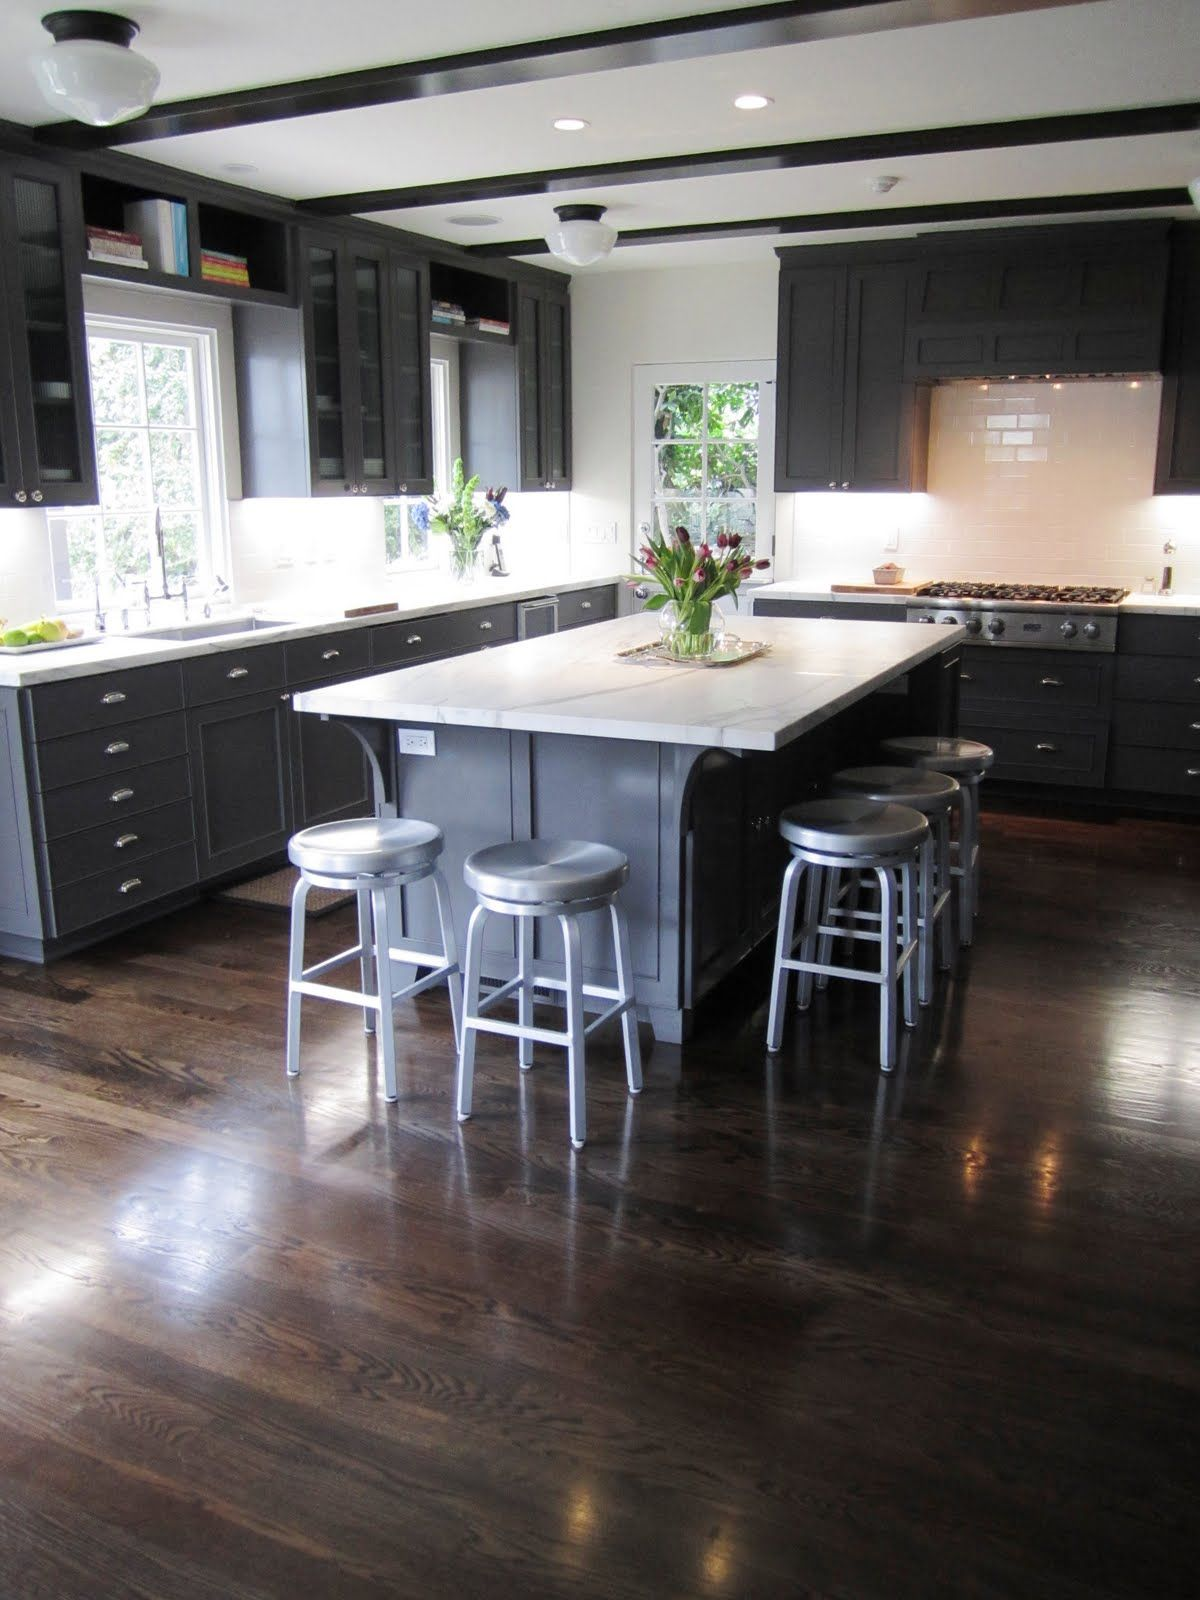 Dark Kitchen Floors Modern Design 25 Traditional Cabinets Flooring Cabinet 7 Ideas Wood And